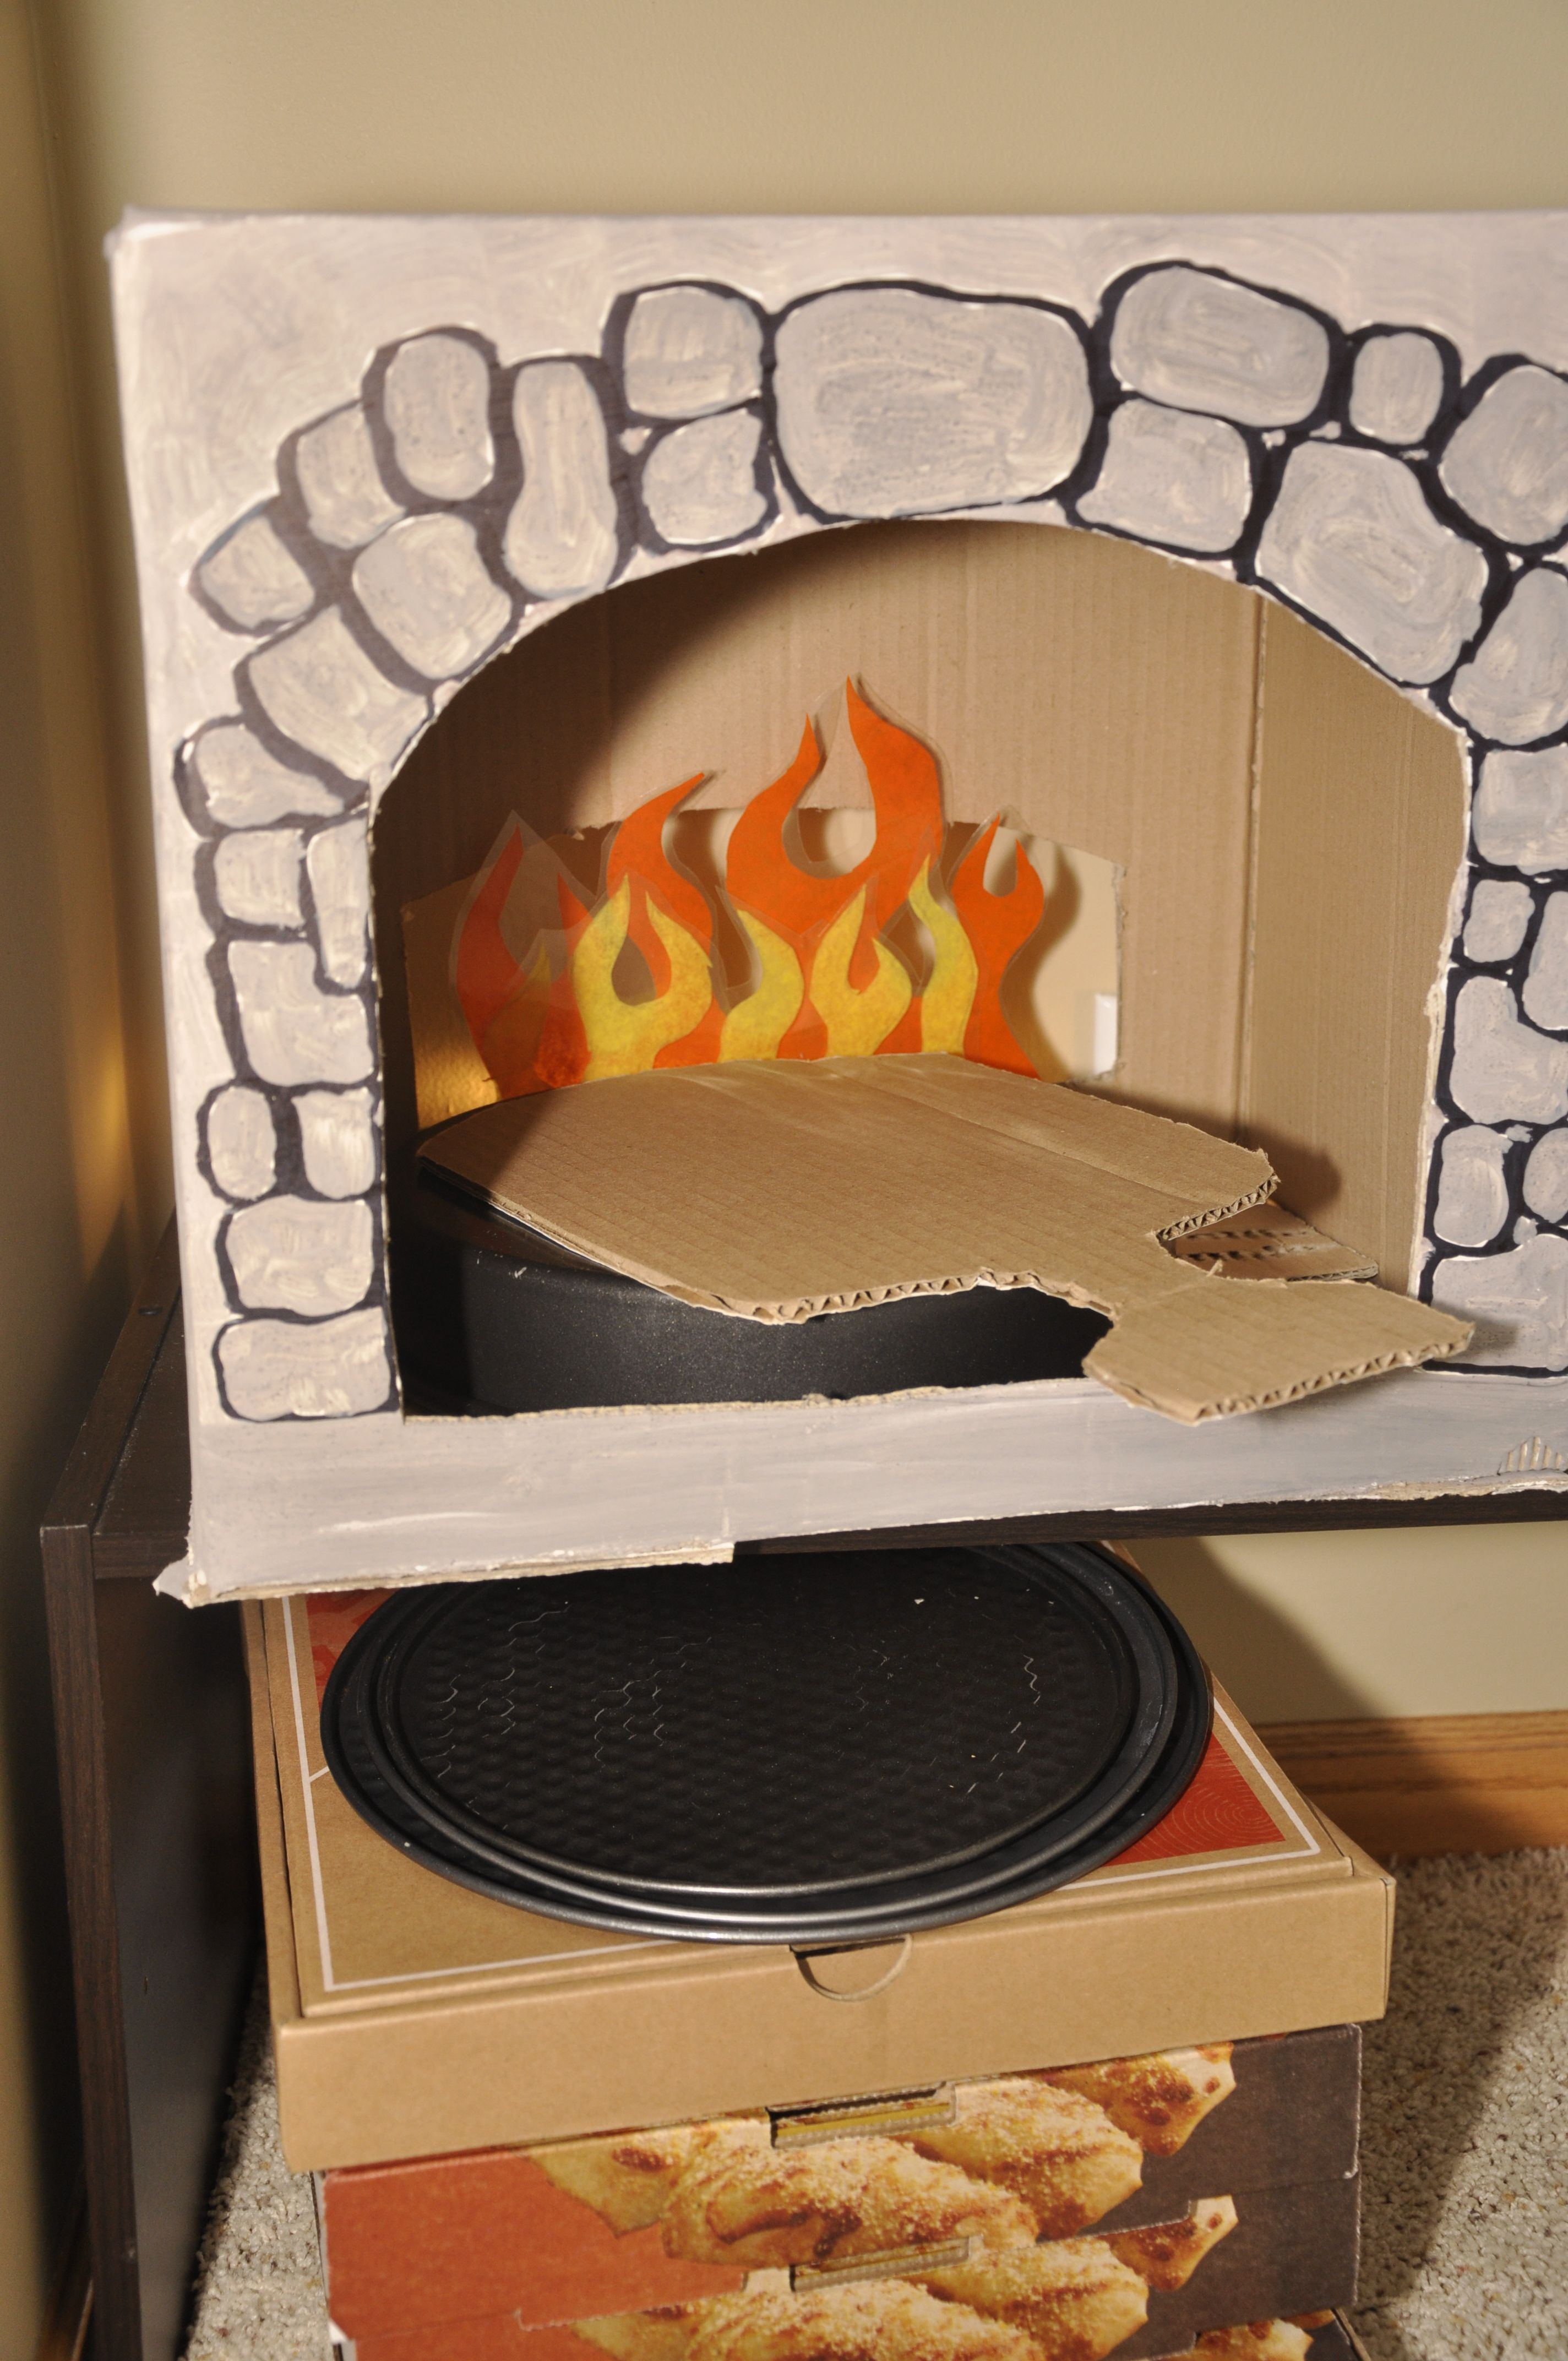 cardboard pizza oven sharpie tempura paint laminated tissue paper flames free pizza boxes. Black Bedroom Furniture Sets. Home Design Ideas